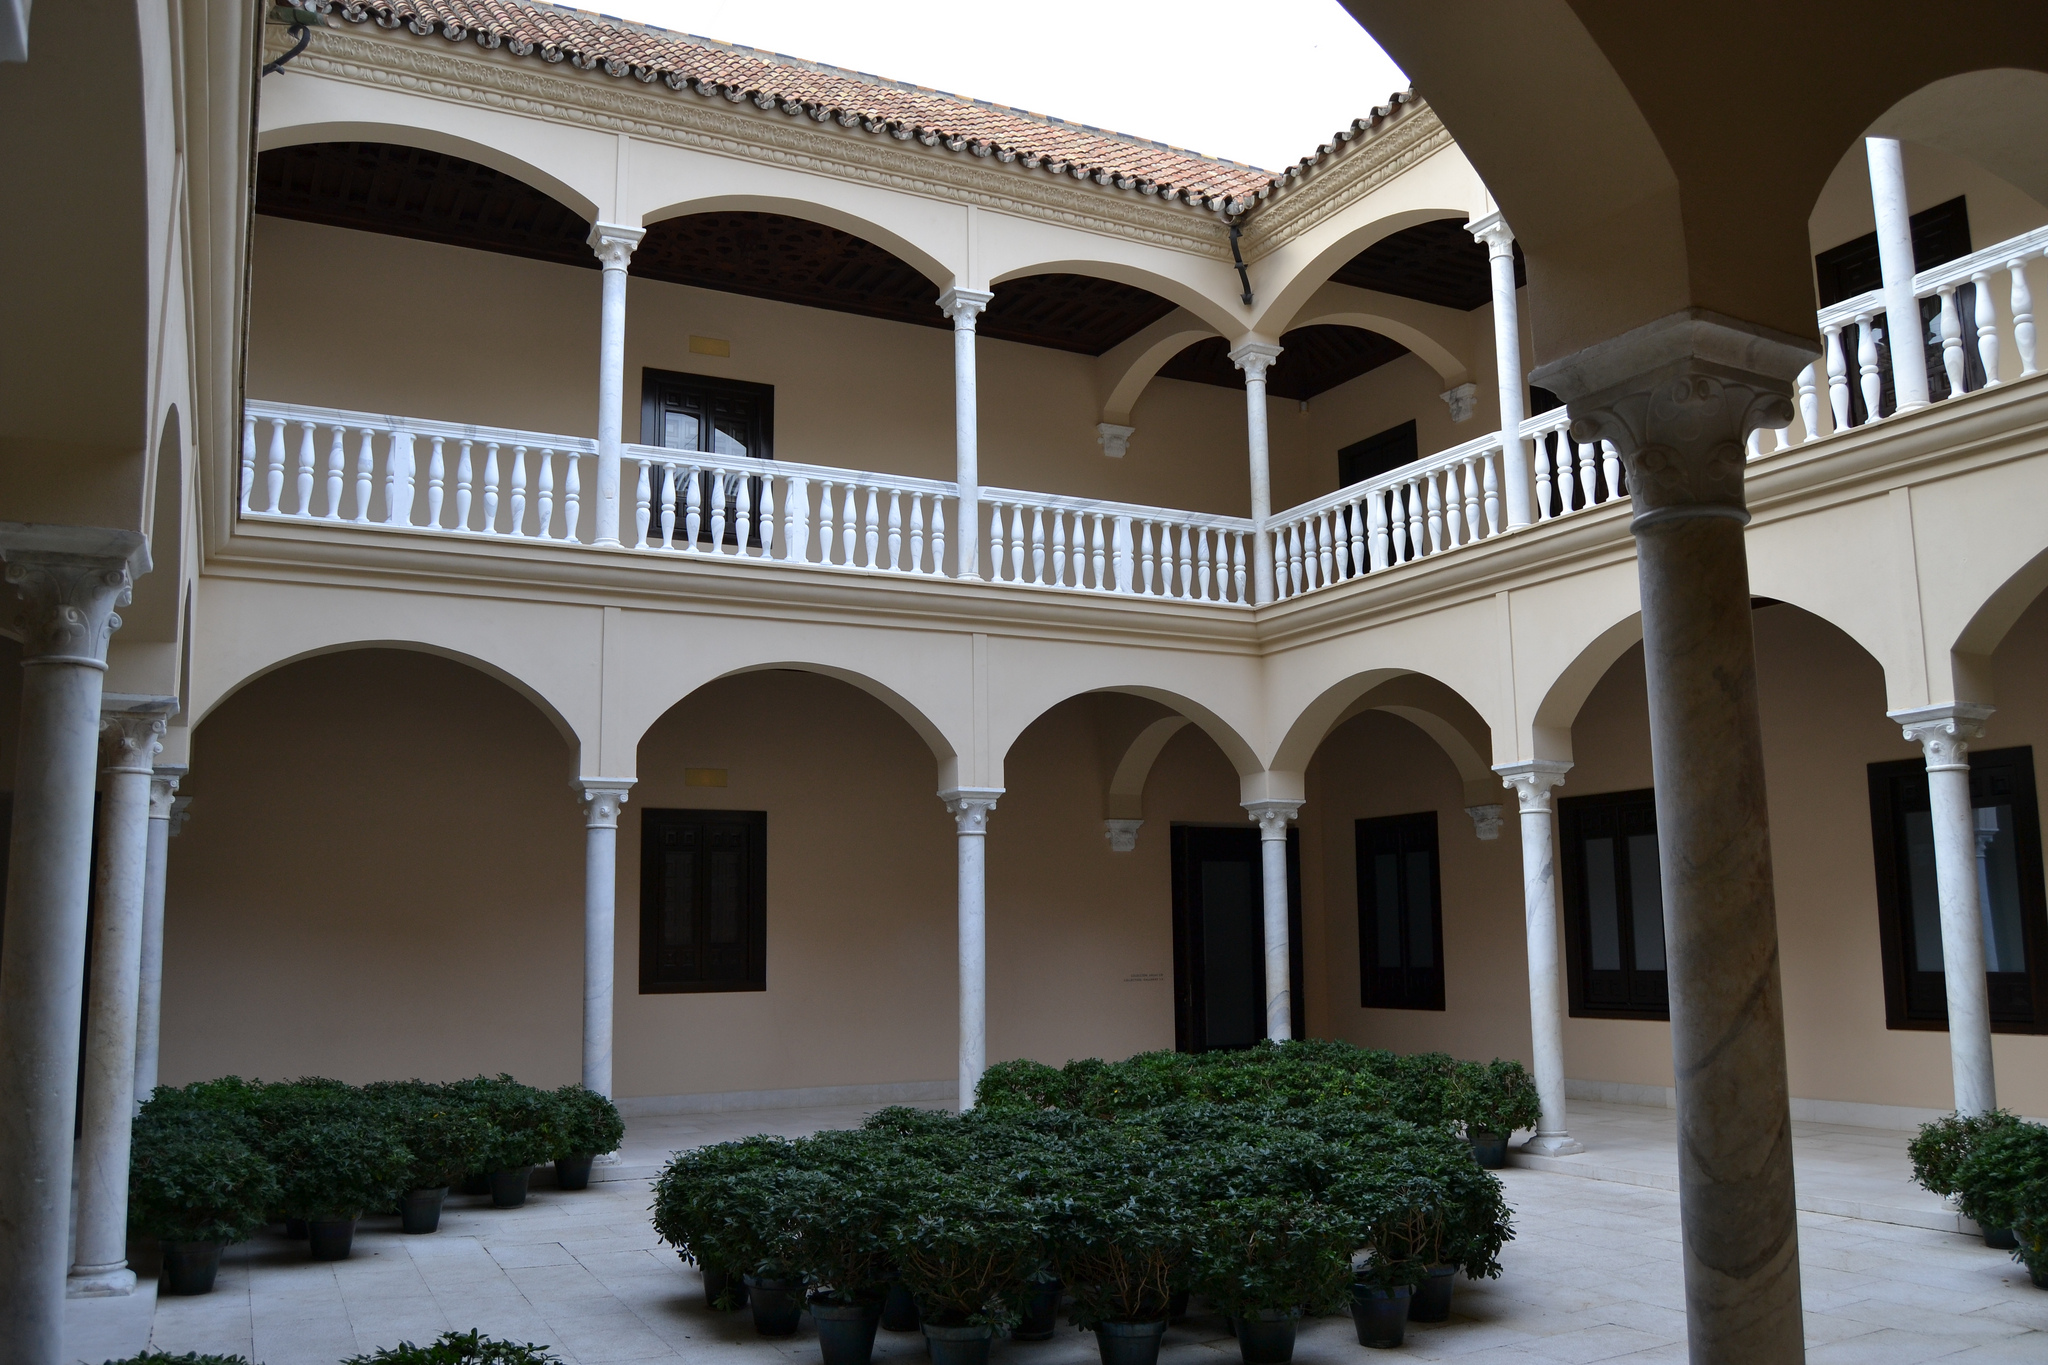 Museo Picasso Málaga - Museum in Spain - Thousand Wonders